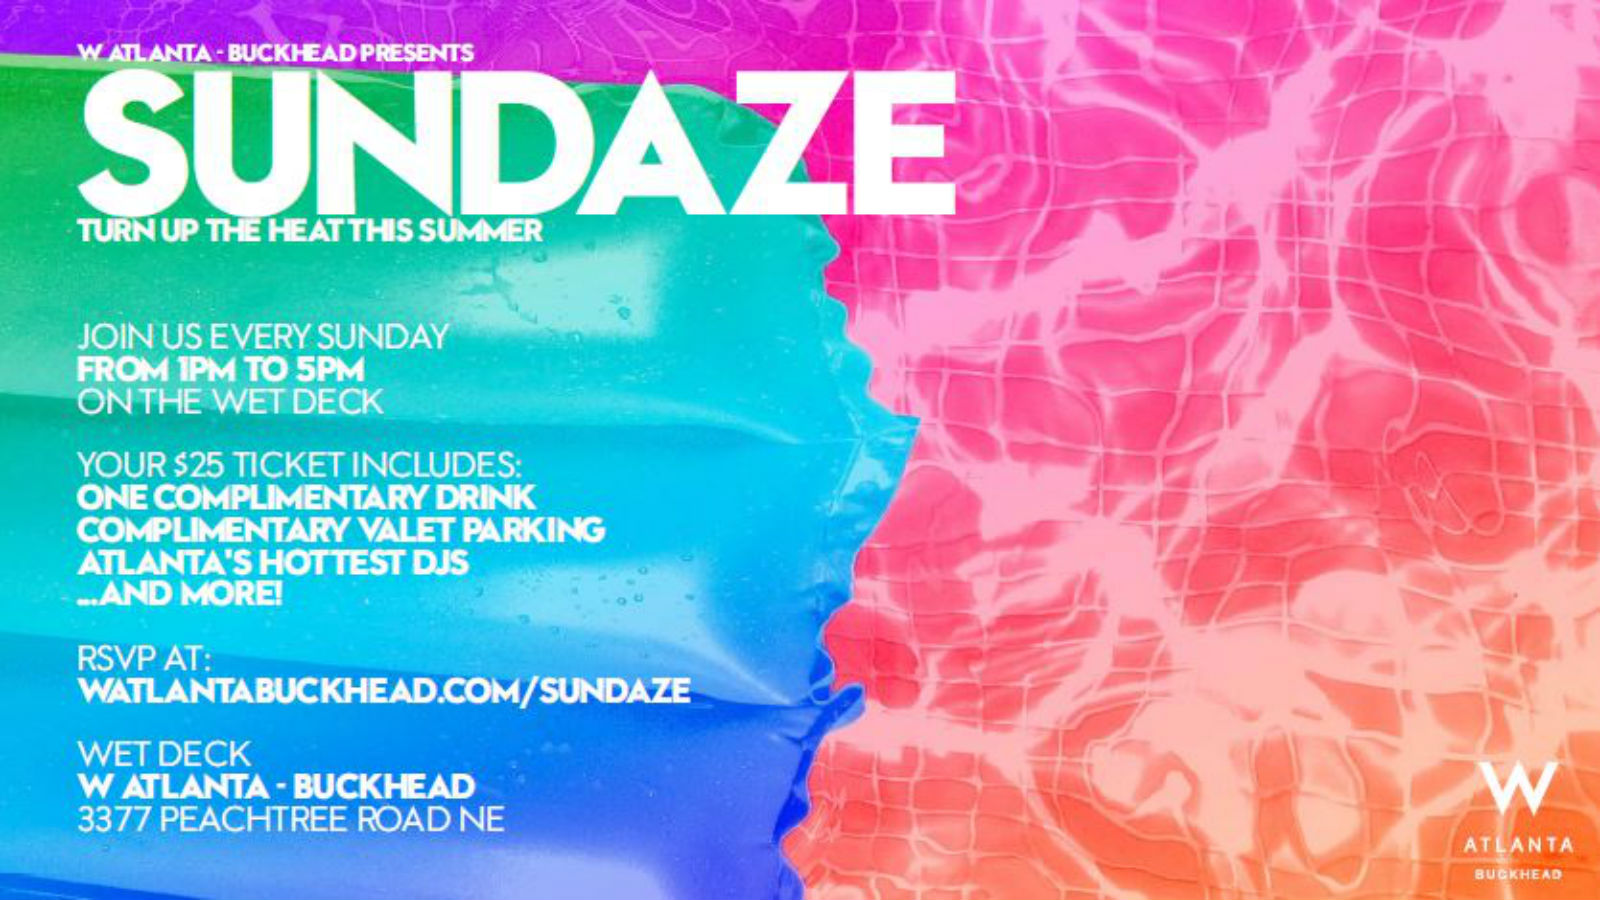 Sundaze Pool Party at W Atlanta - Buckhead